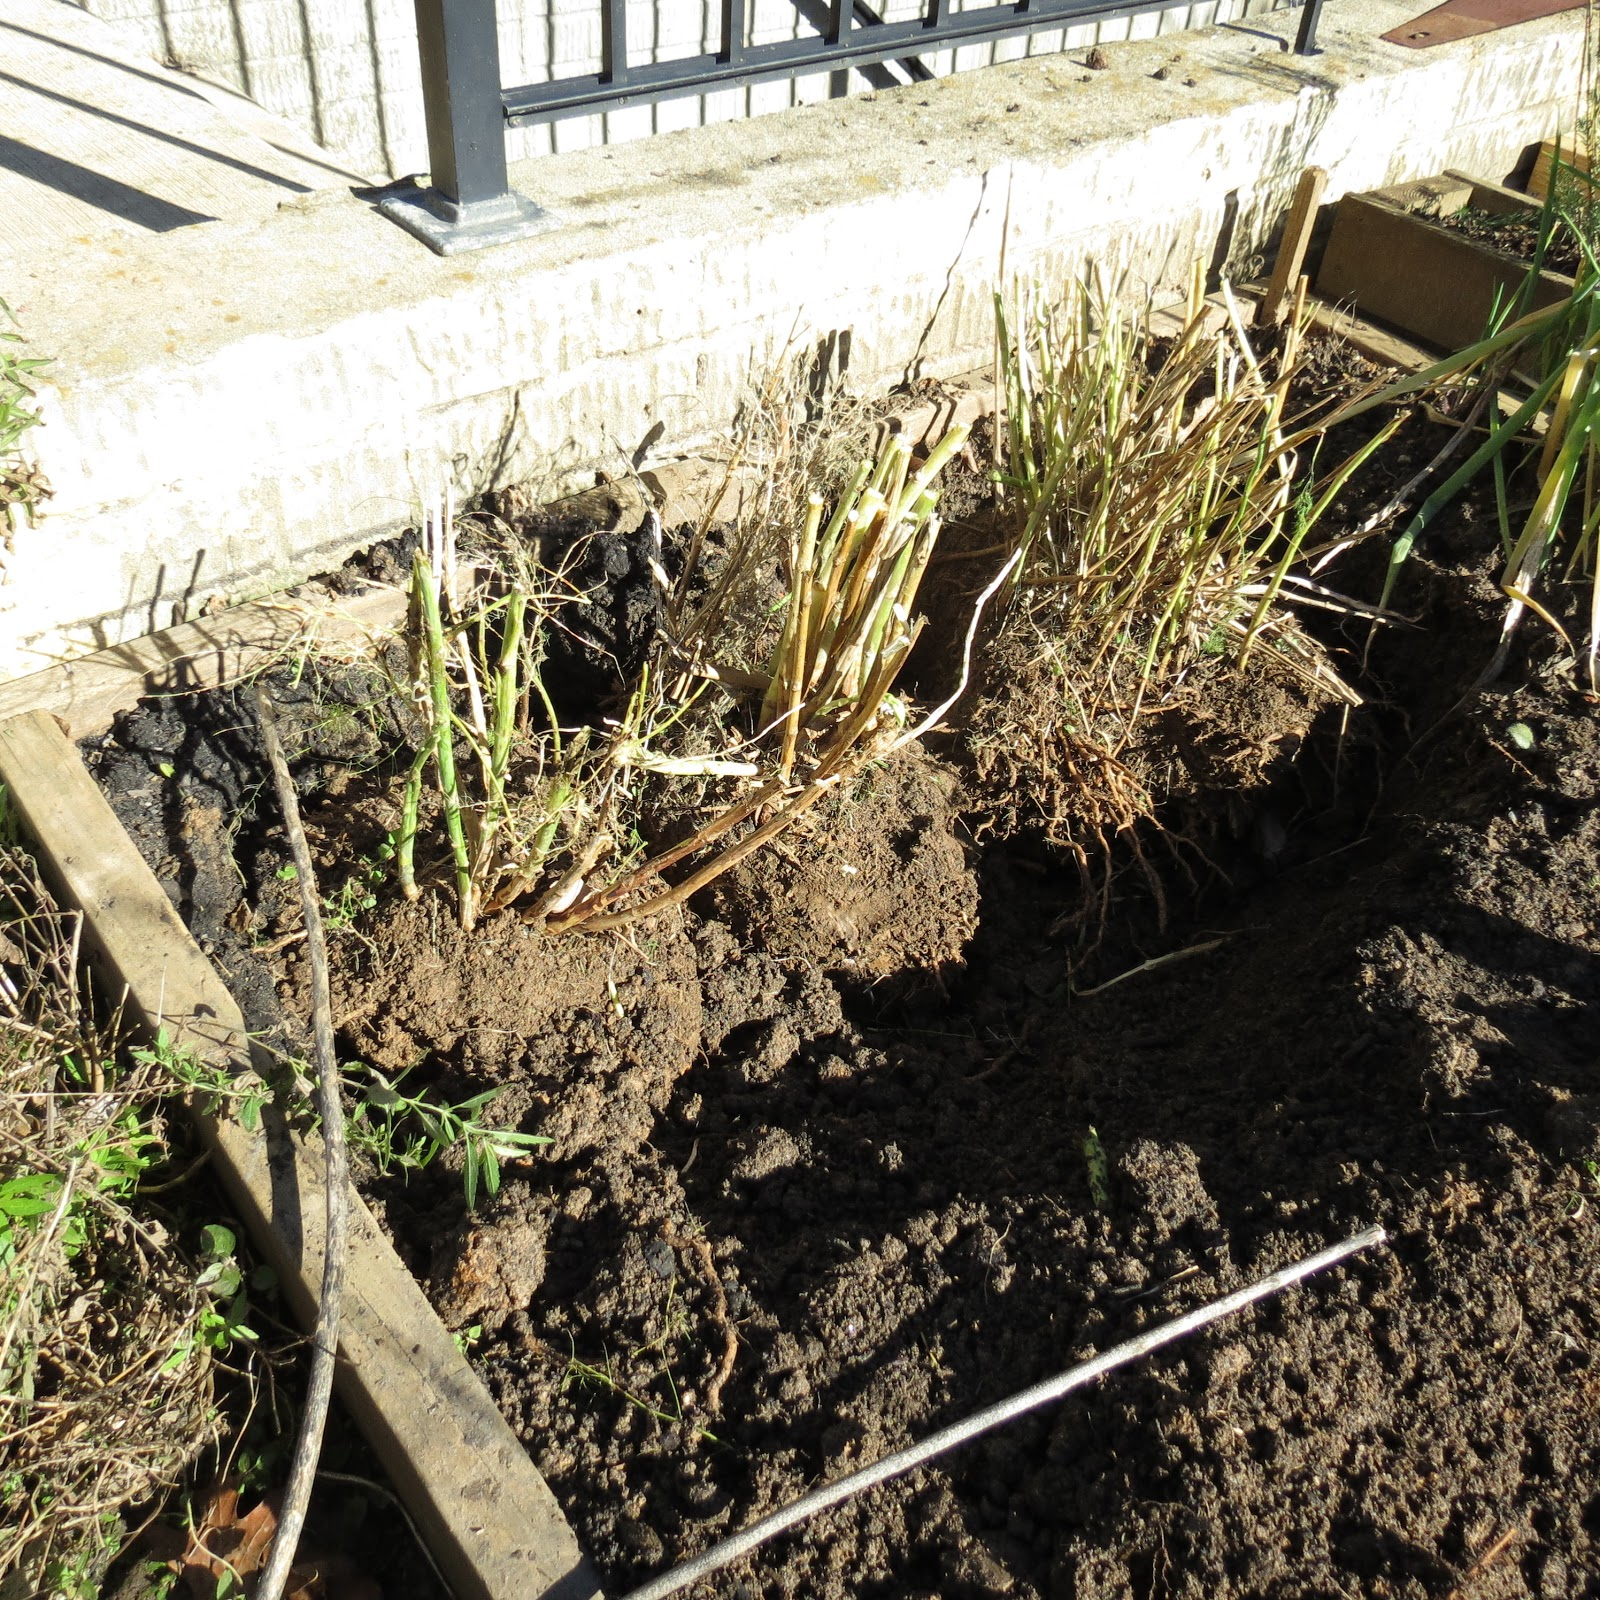 The Rusted Vegetable Garden: The Rusted Vegetable Garden: Digging Up And Transplanting